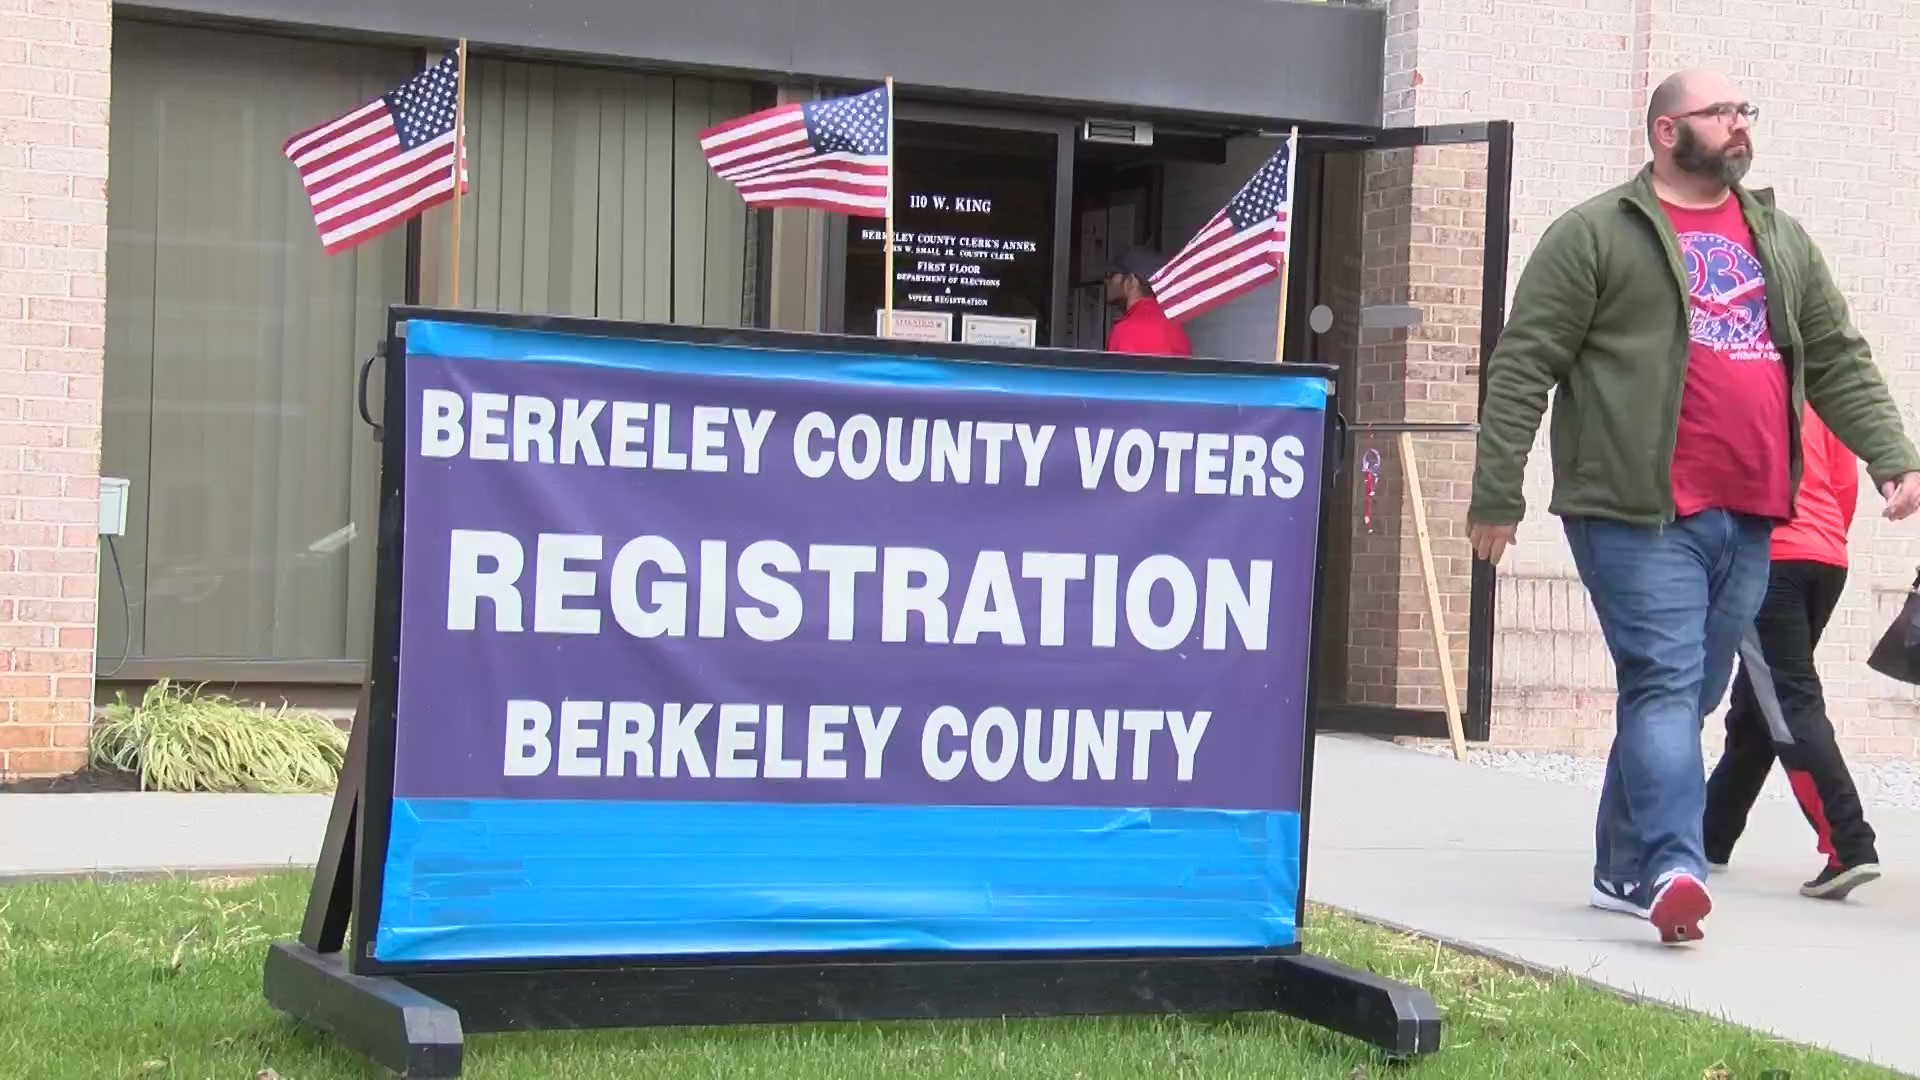 Berkeley County recieves wave of voters during early voting